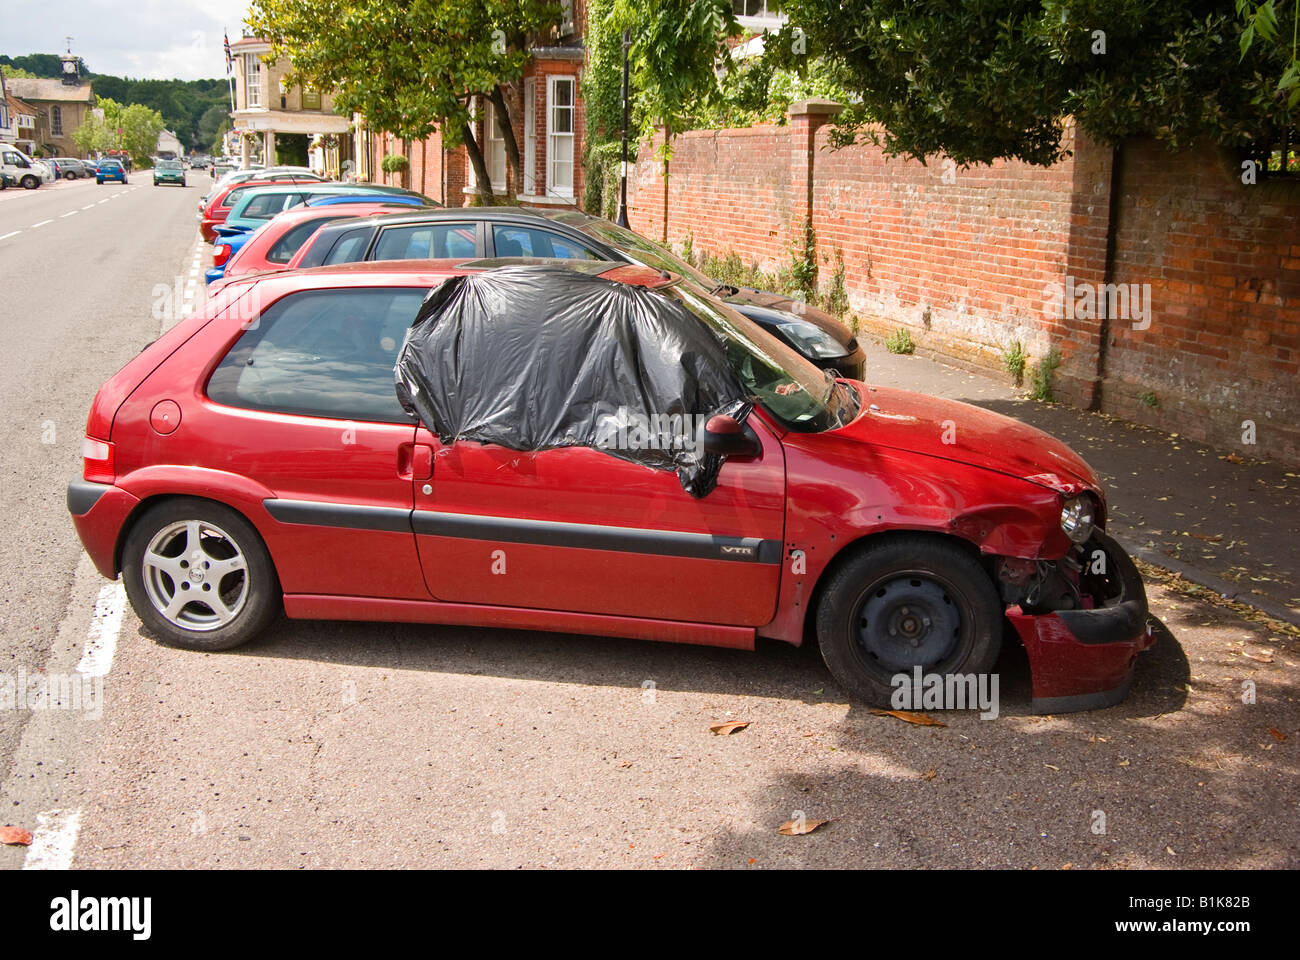 Red private saloon car damaged and parked by roadside in Stockbridge Hampshire UK - Stock Image